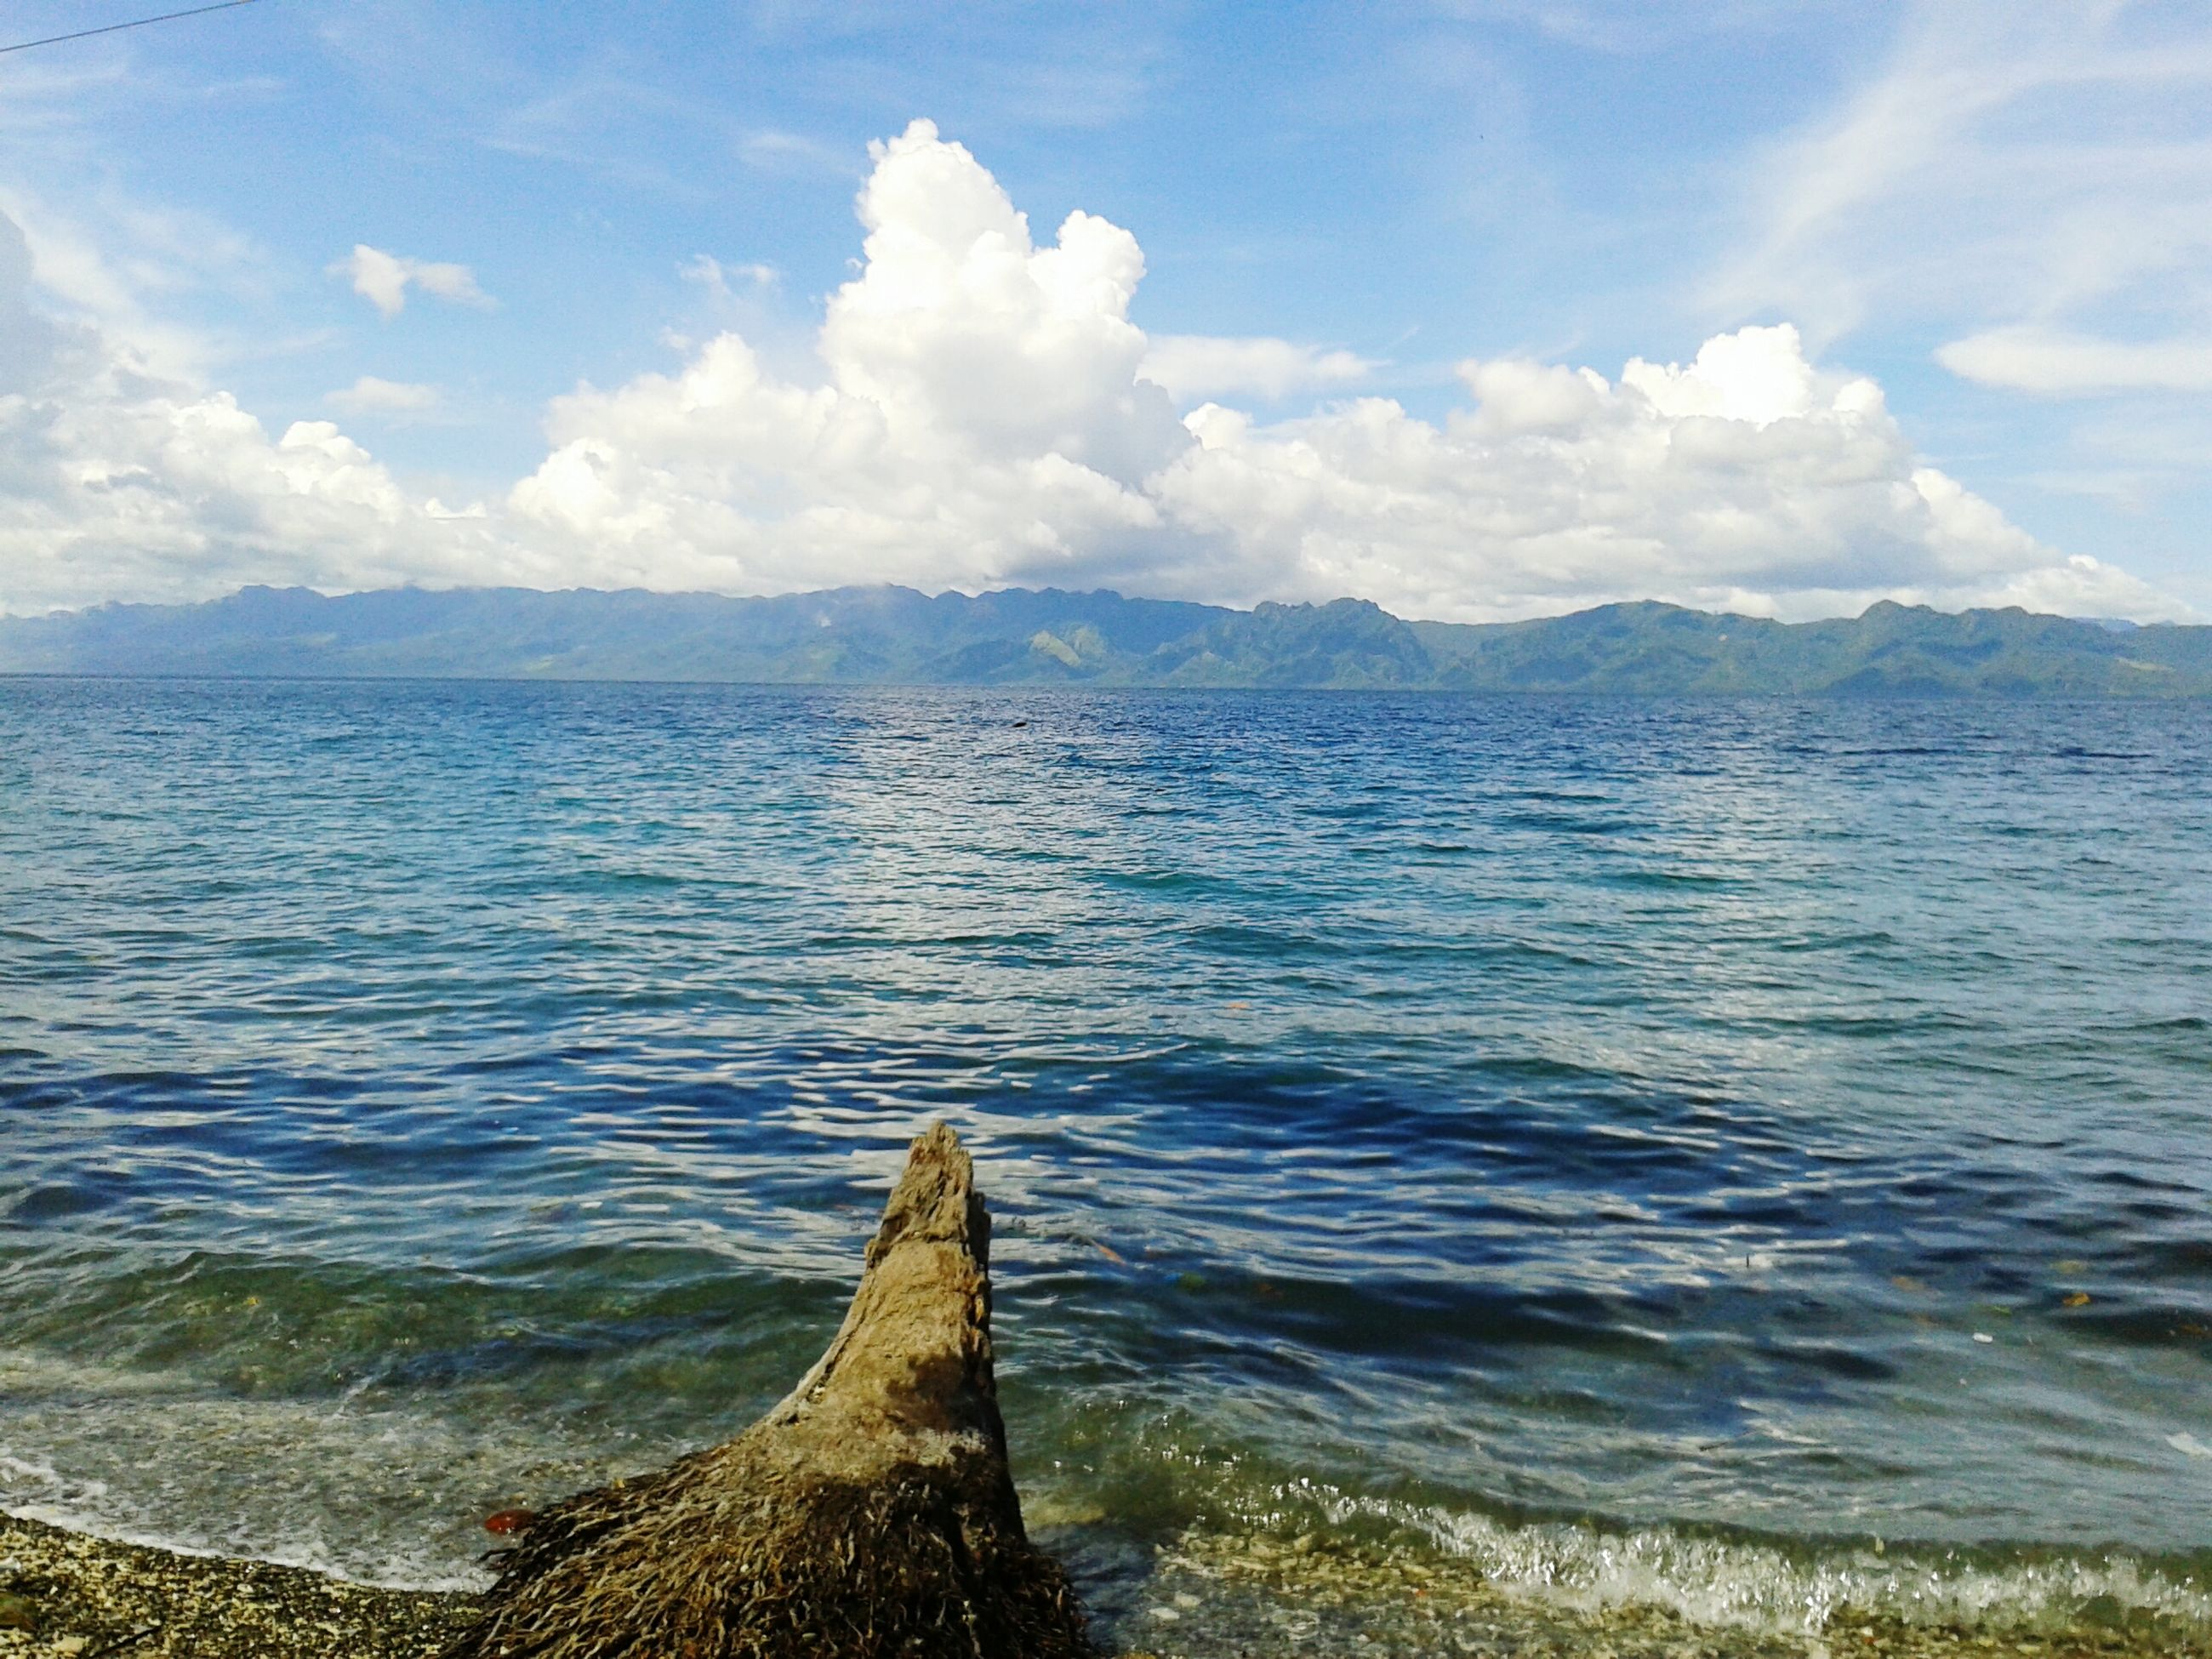 water, sea, sky, scenics, tranquil scene, beauty in nature, tranquility, nature, cloud - sky, mountain, rippled, idyllic, cloud, blue, horizon over water, day, non-urban scene, outdoors, remote, beach